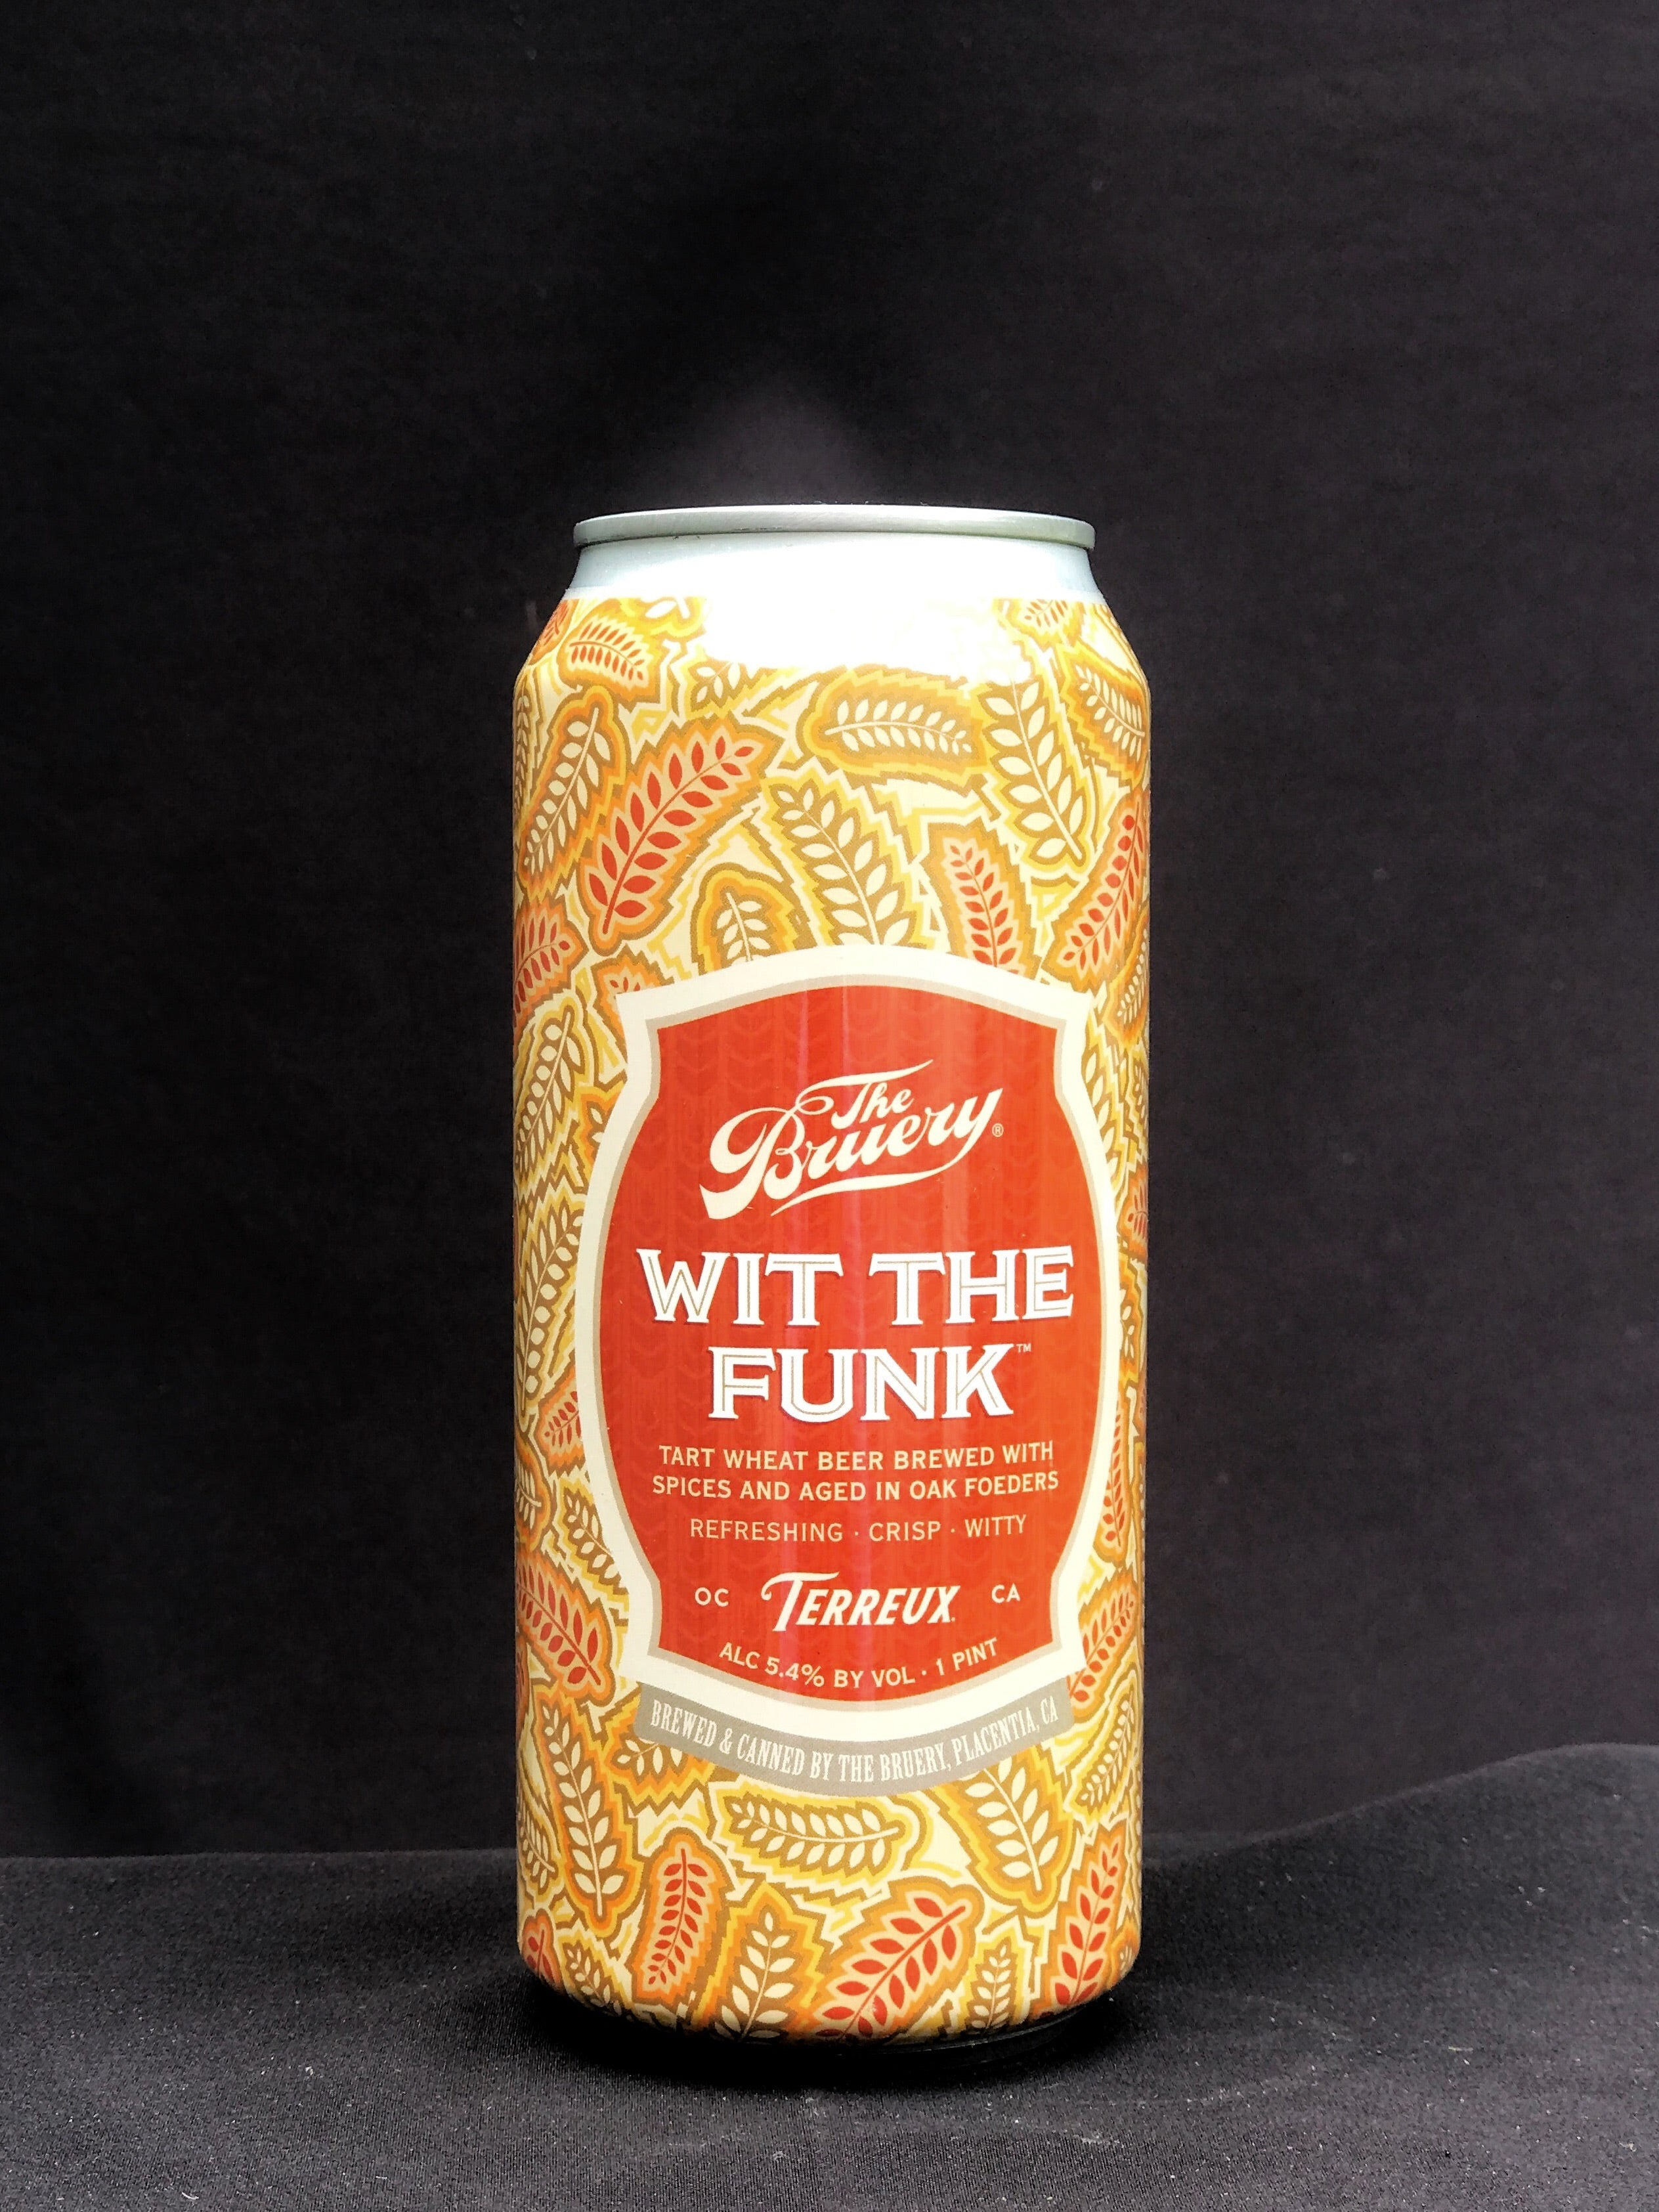 The Bruery Terreux Wit the Funk Wild Ale